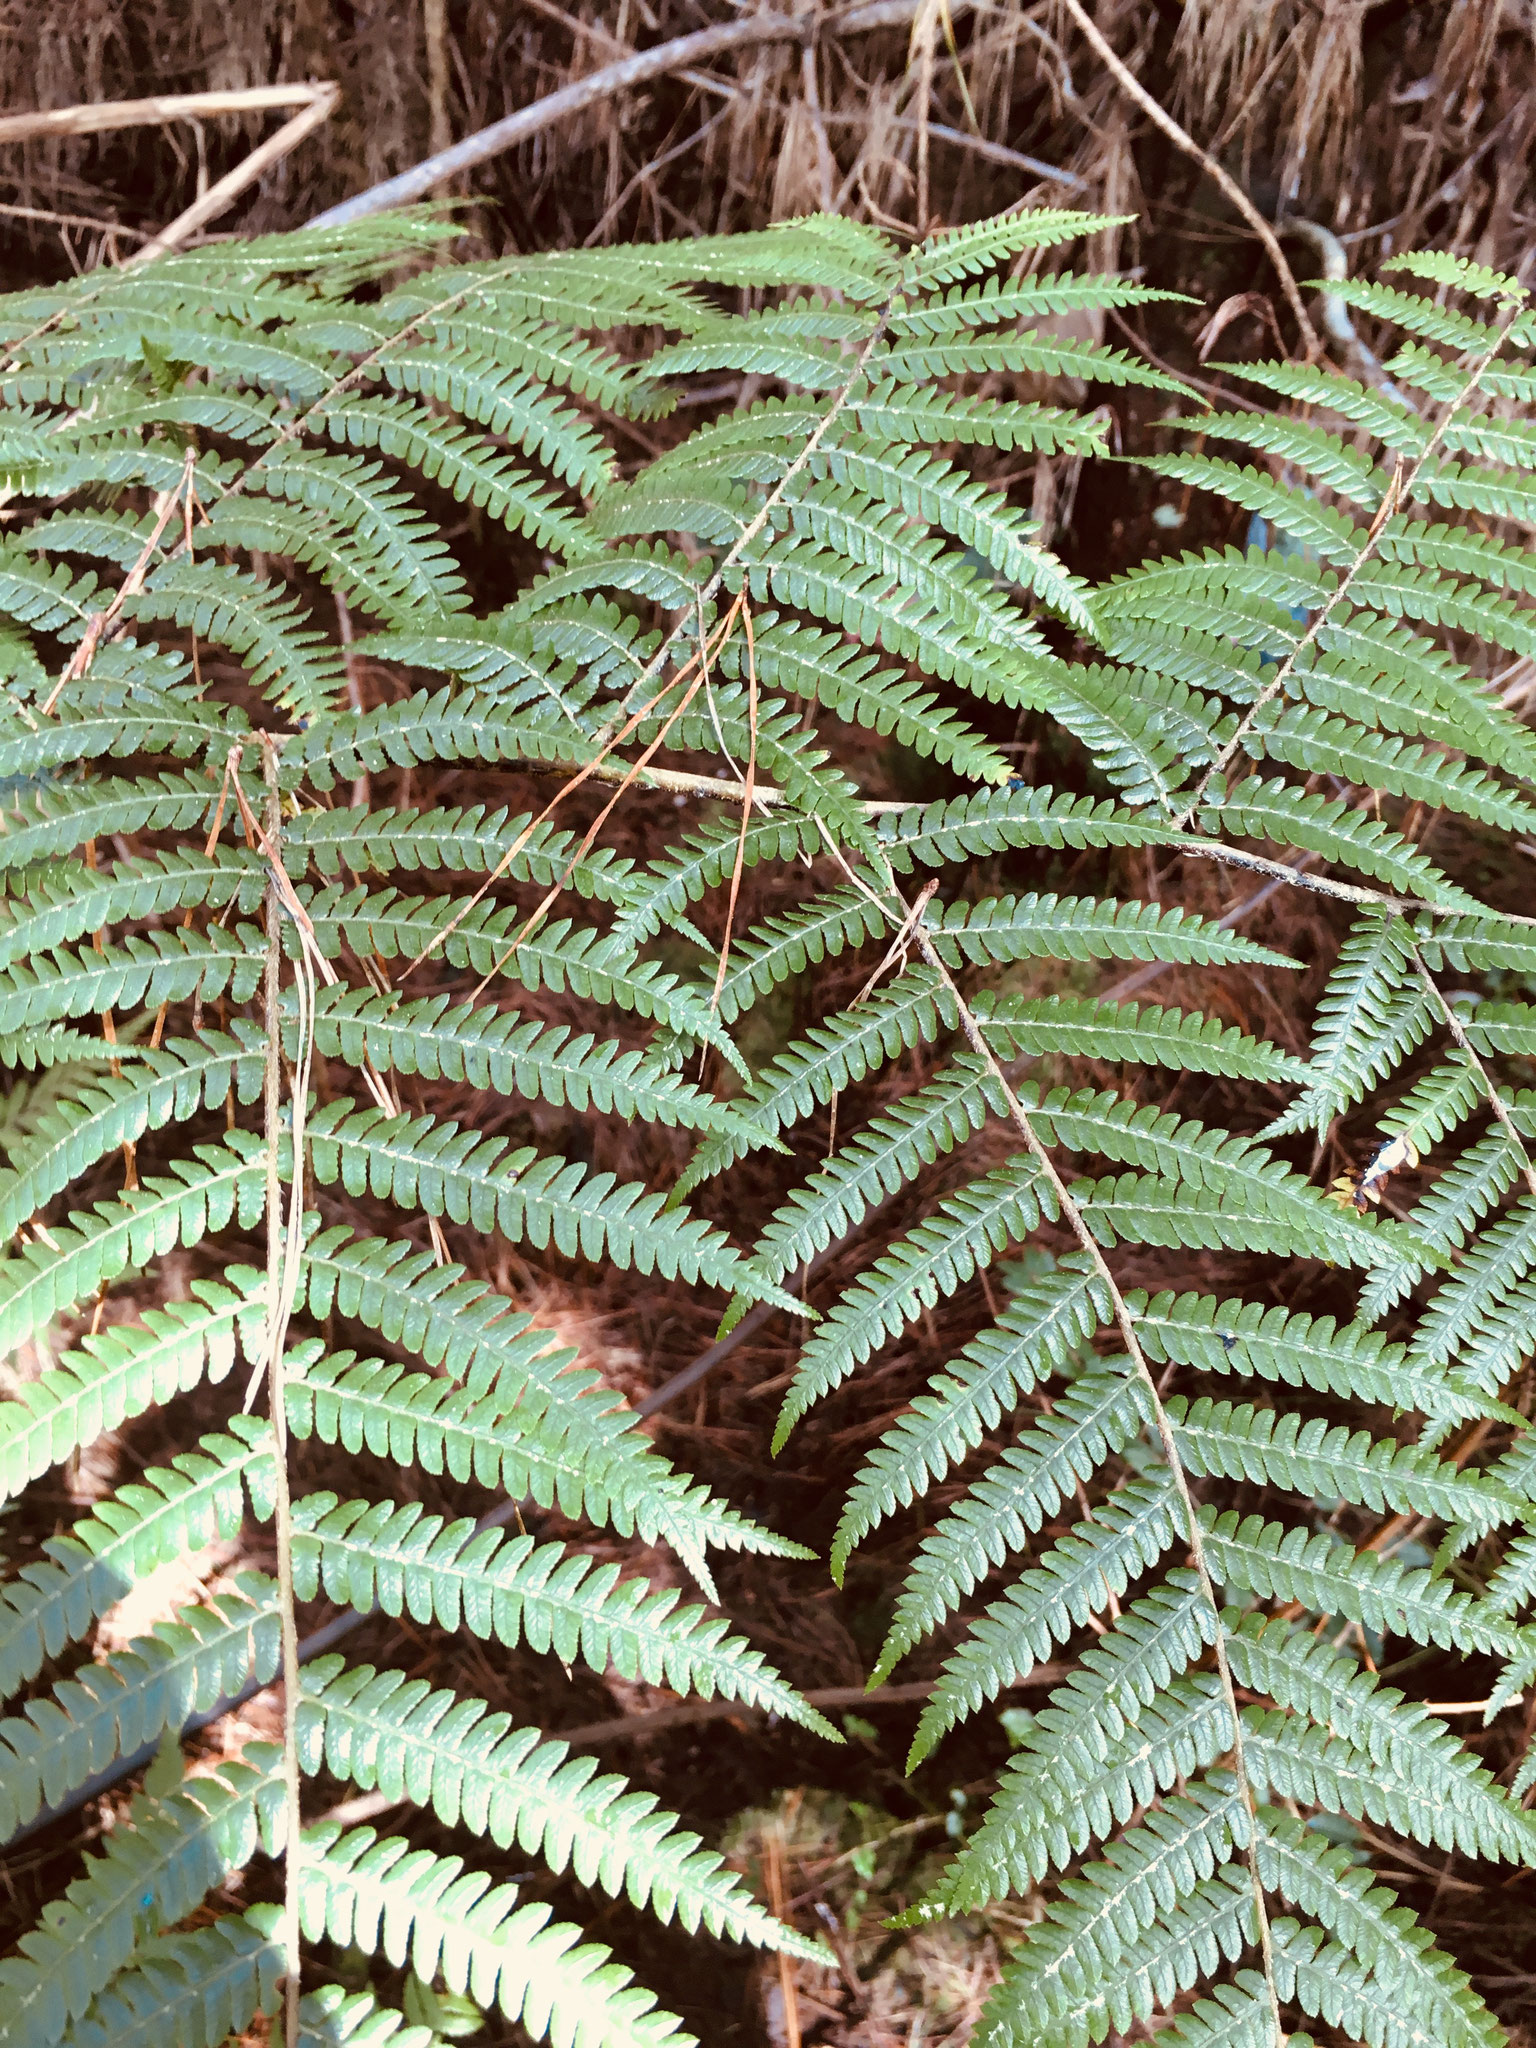 We saw lots of flora like this beautiful fern and talked about the koru pattern.